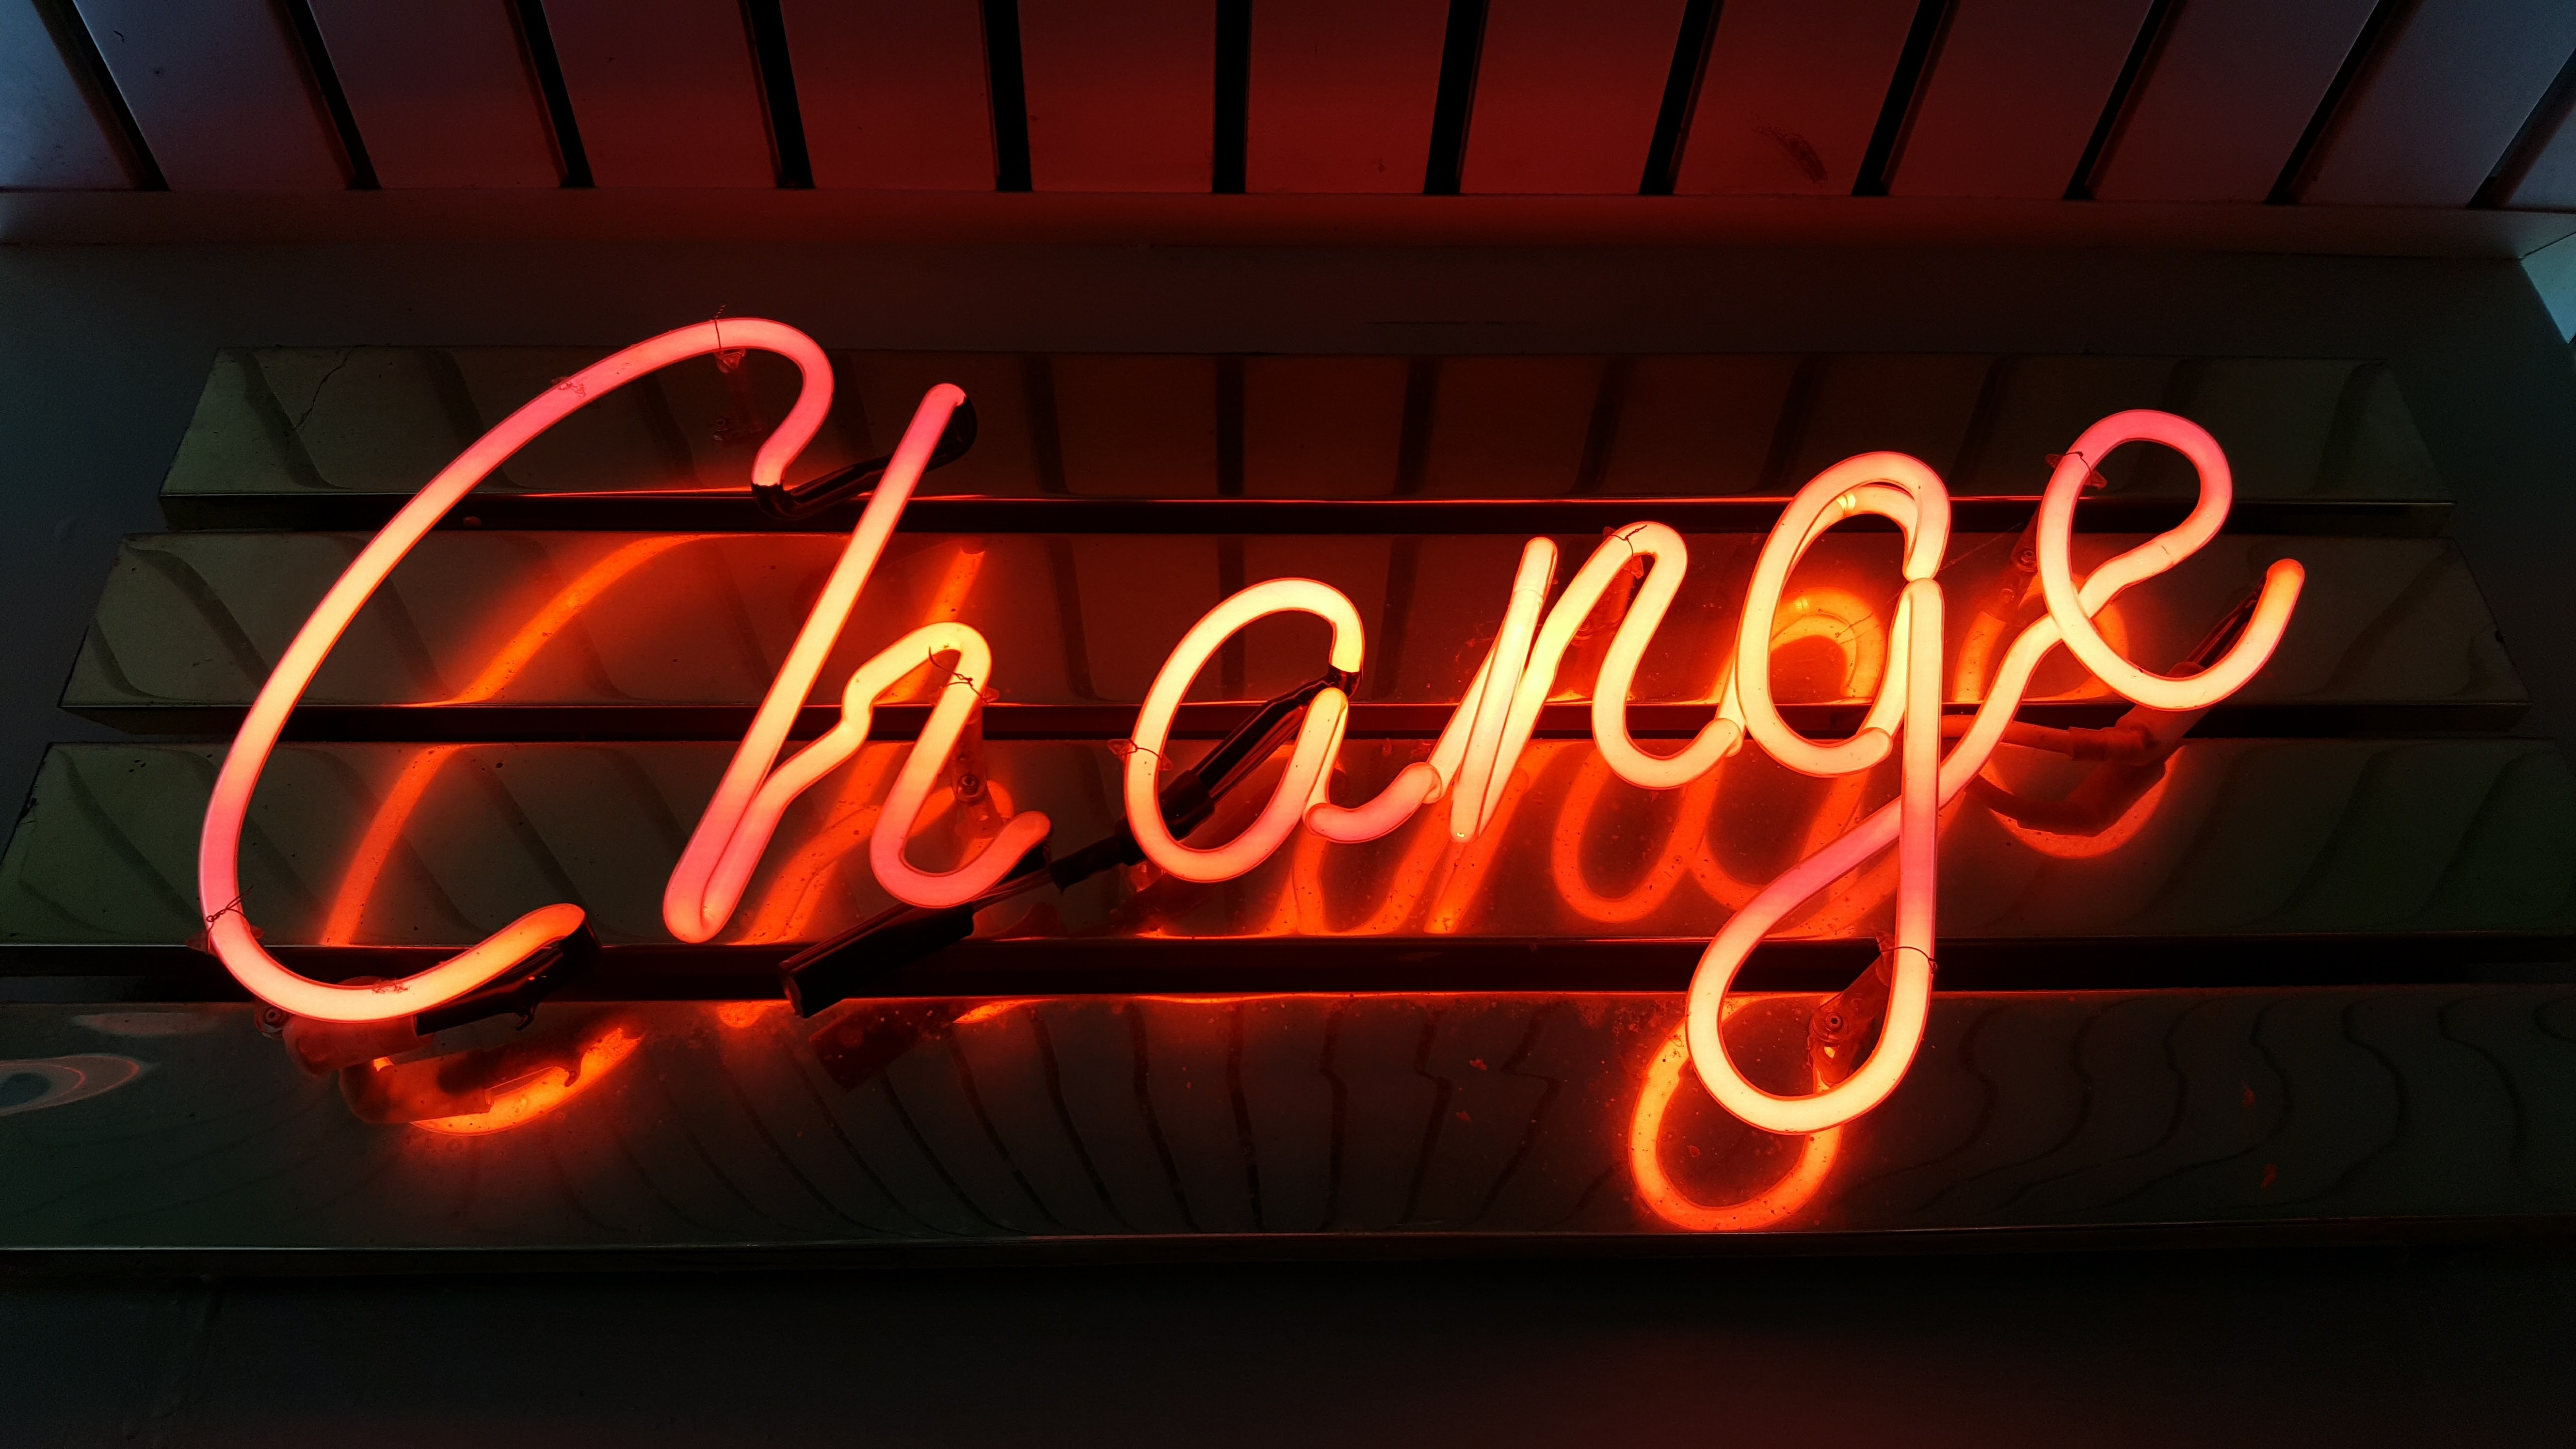 Orange neon letter sign that says Change